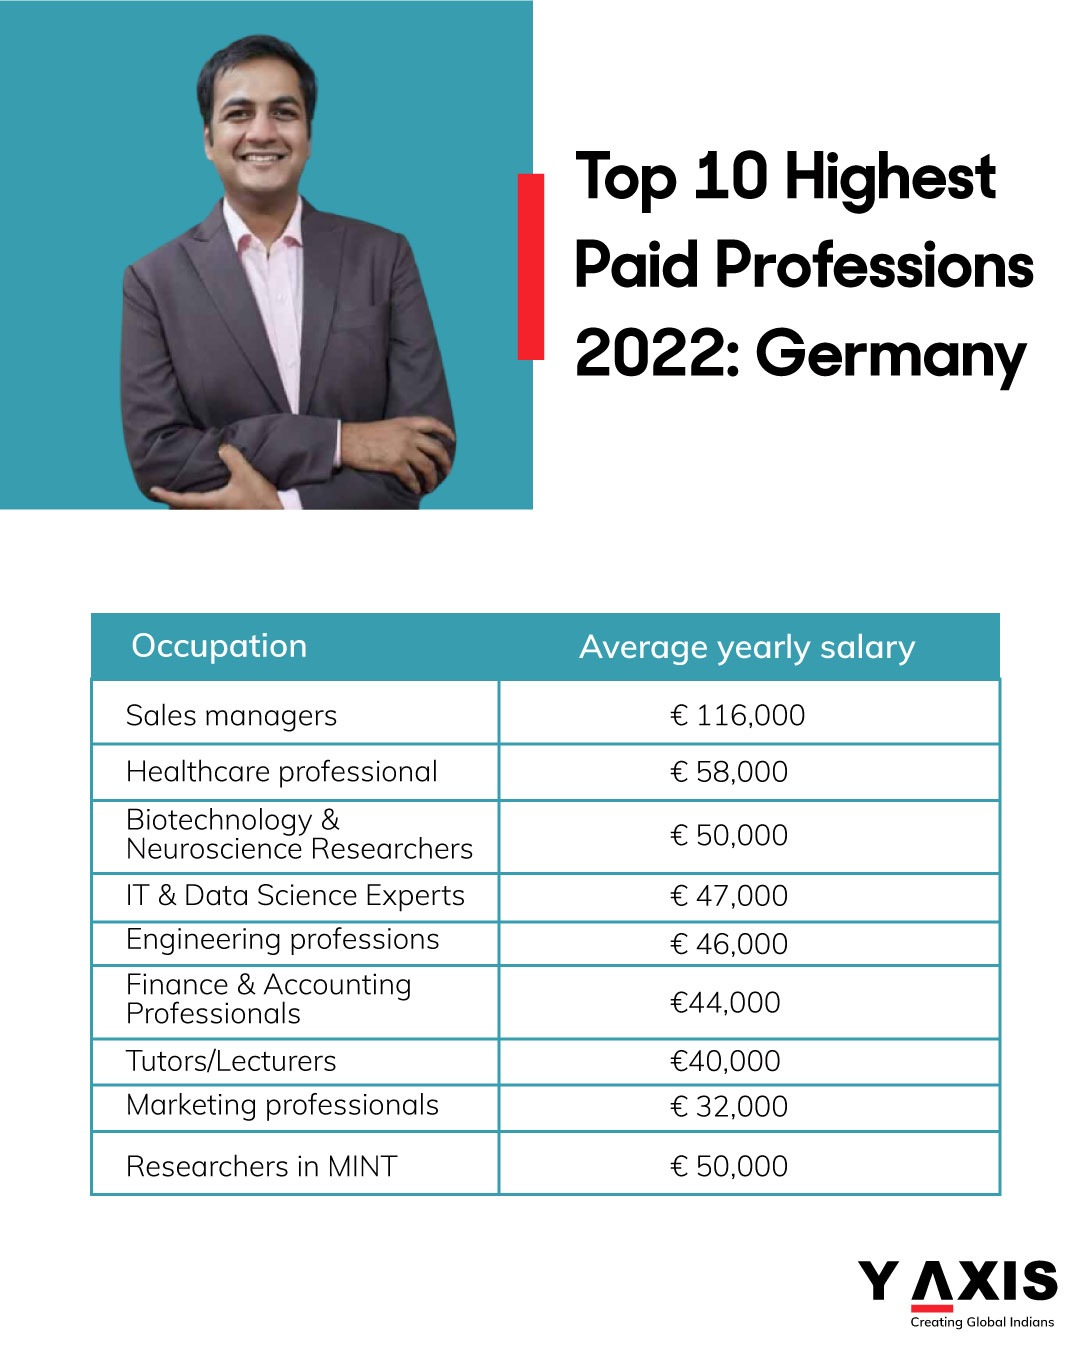 Jobs that pay you the highest in Germany in 2022